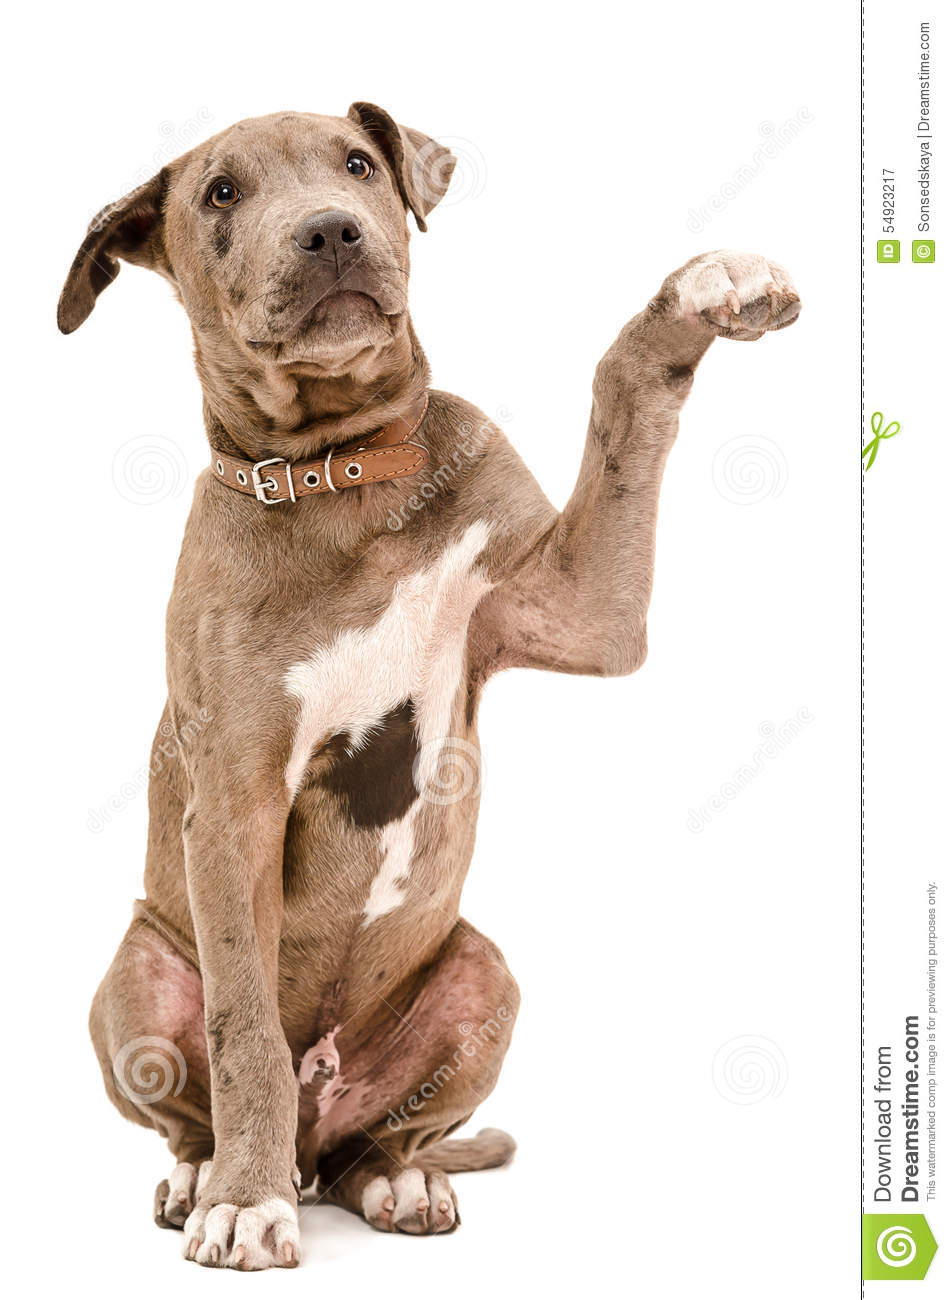 Pit Bull Puppy Sitting With A Raised Paw Stock Photo